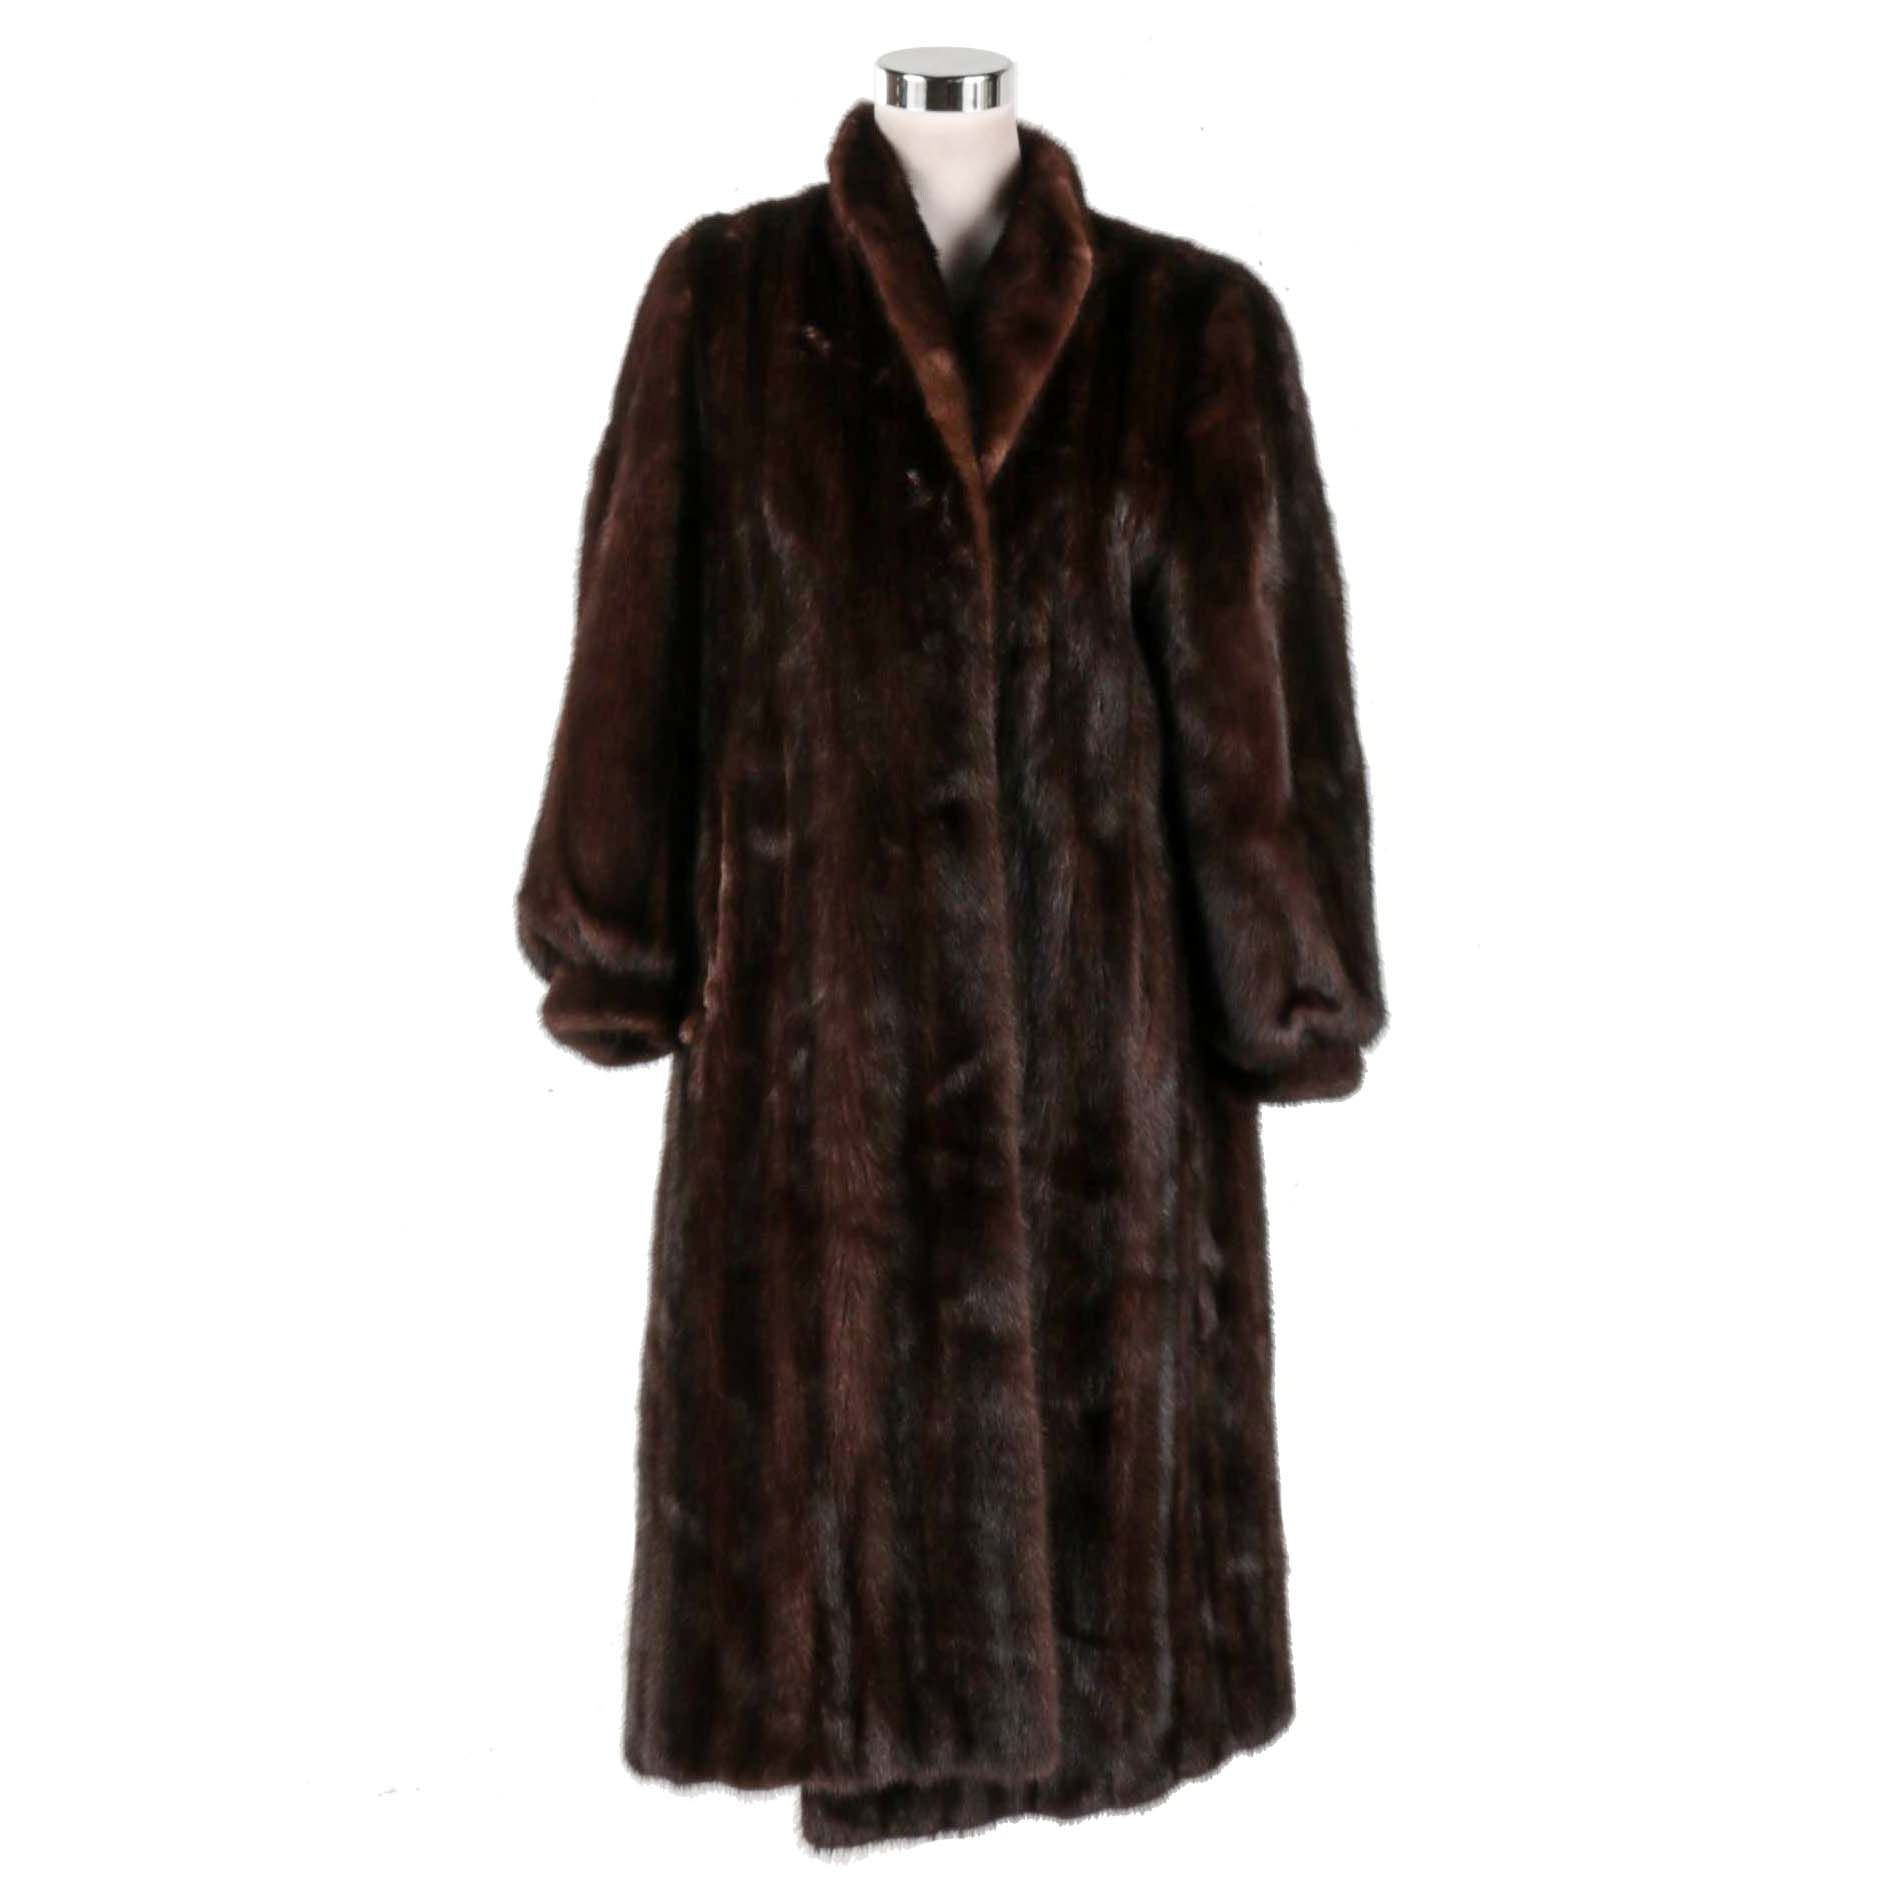 Michael Fur Co. Full Length Mink Coat